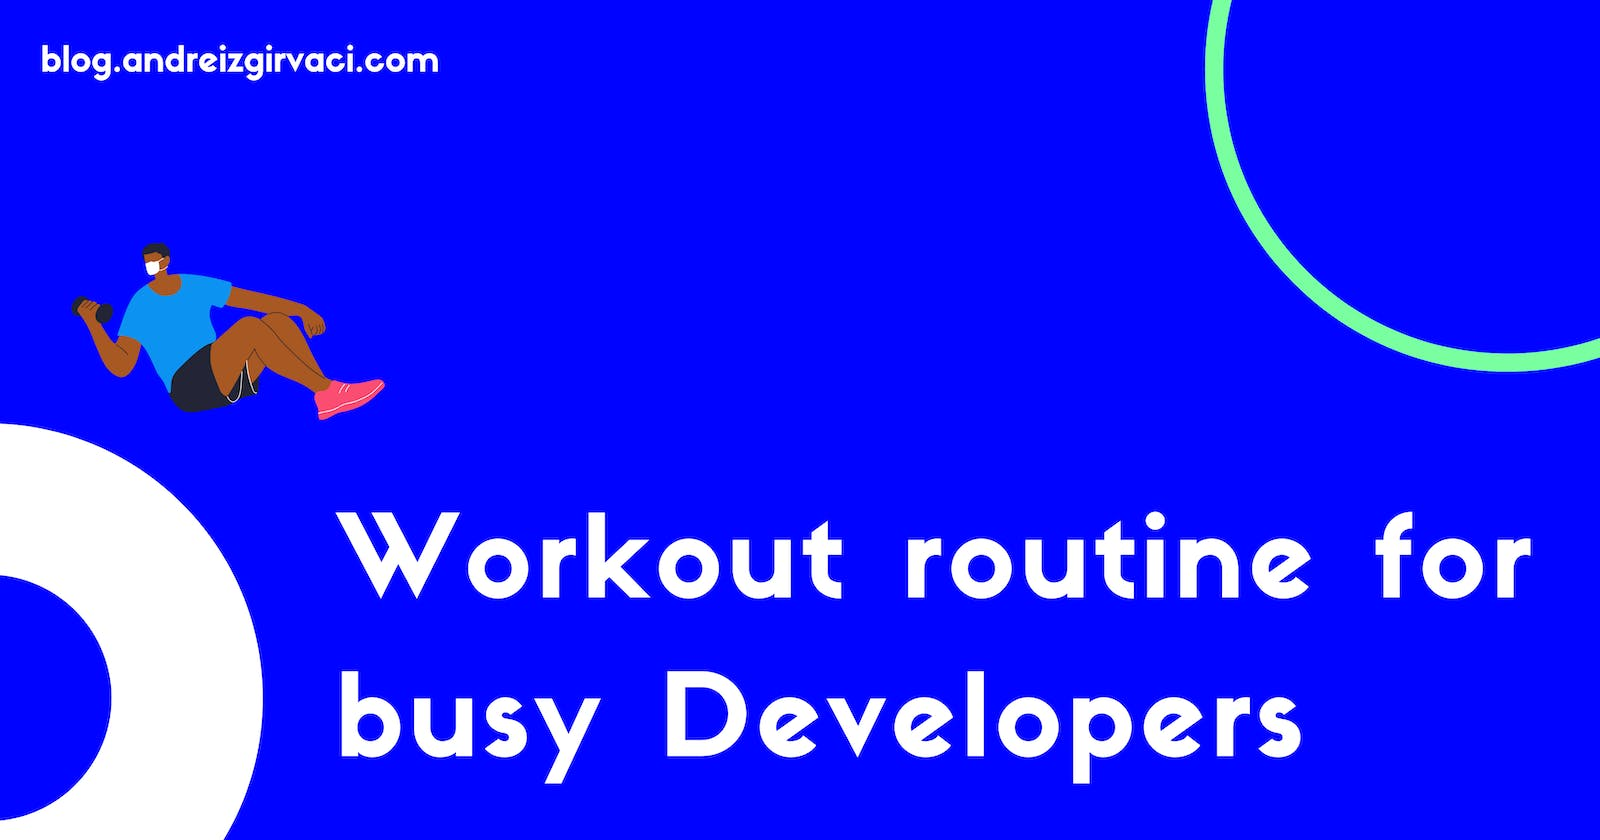 Workout routine for busy Developers 💪🧑💻